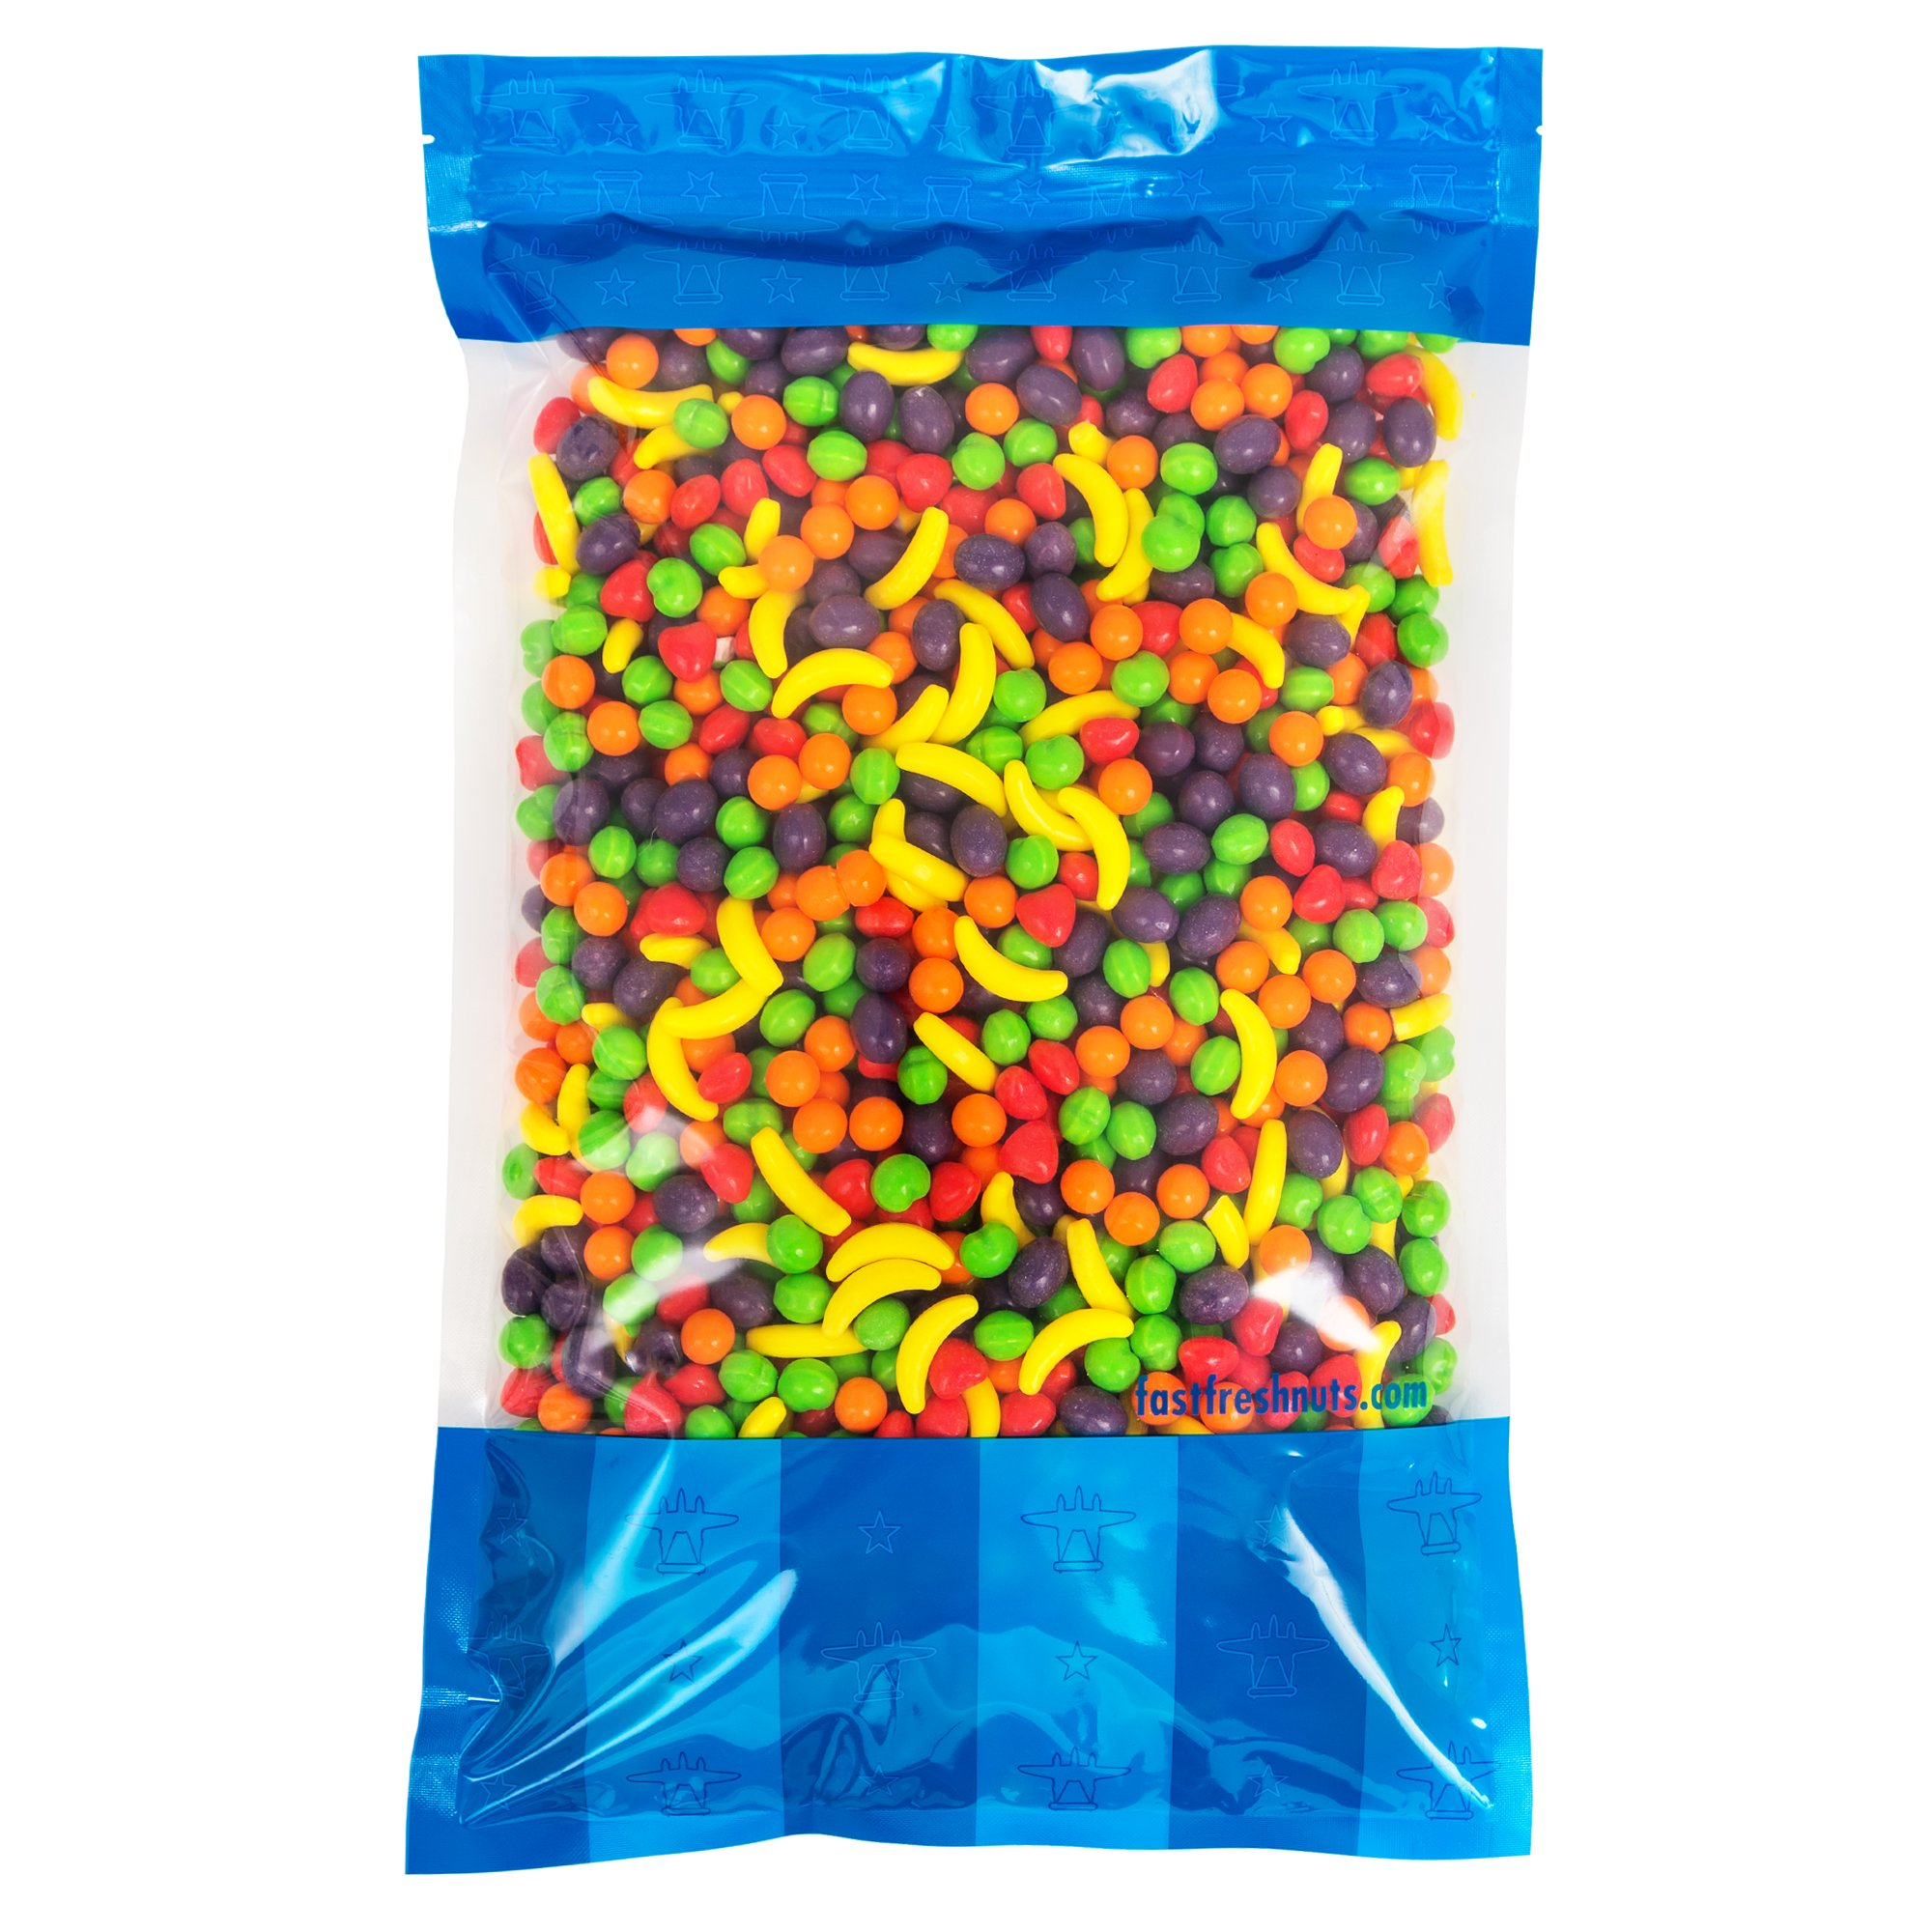 Bulk Runts Fruit Candy 5 lbs In a Resealable Bomber Bag - Great for Candy Bowls - Vending Machine Refills - Wholesale - Parties by Fast Fresh Nuts